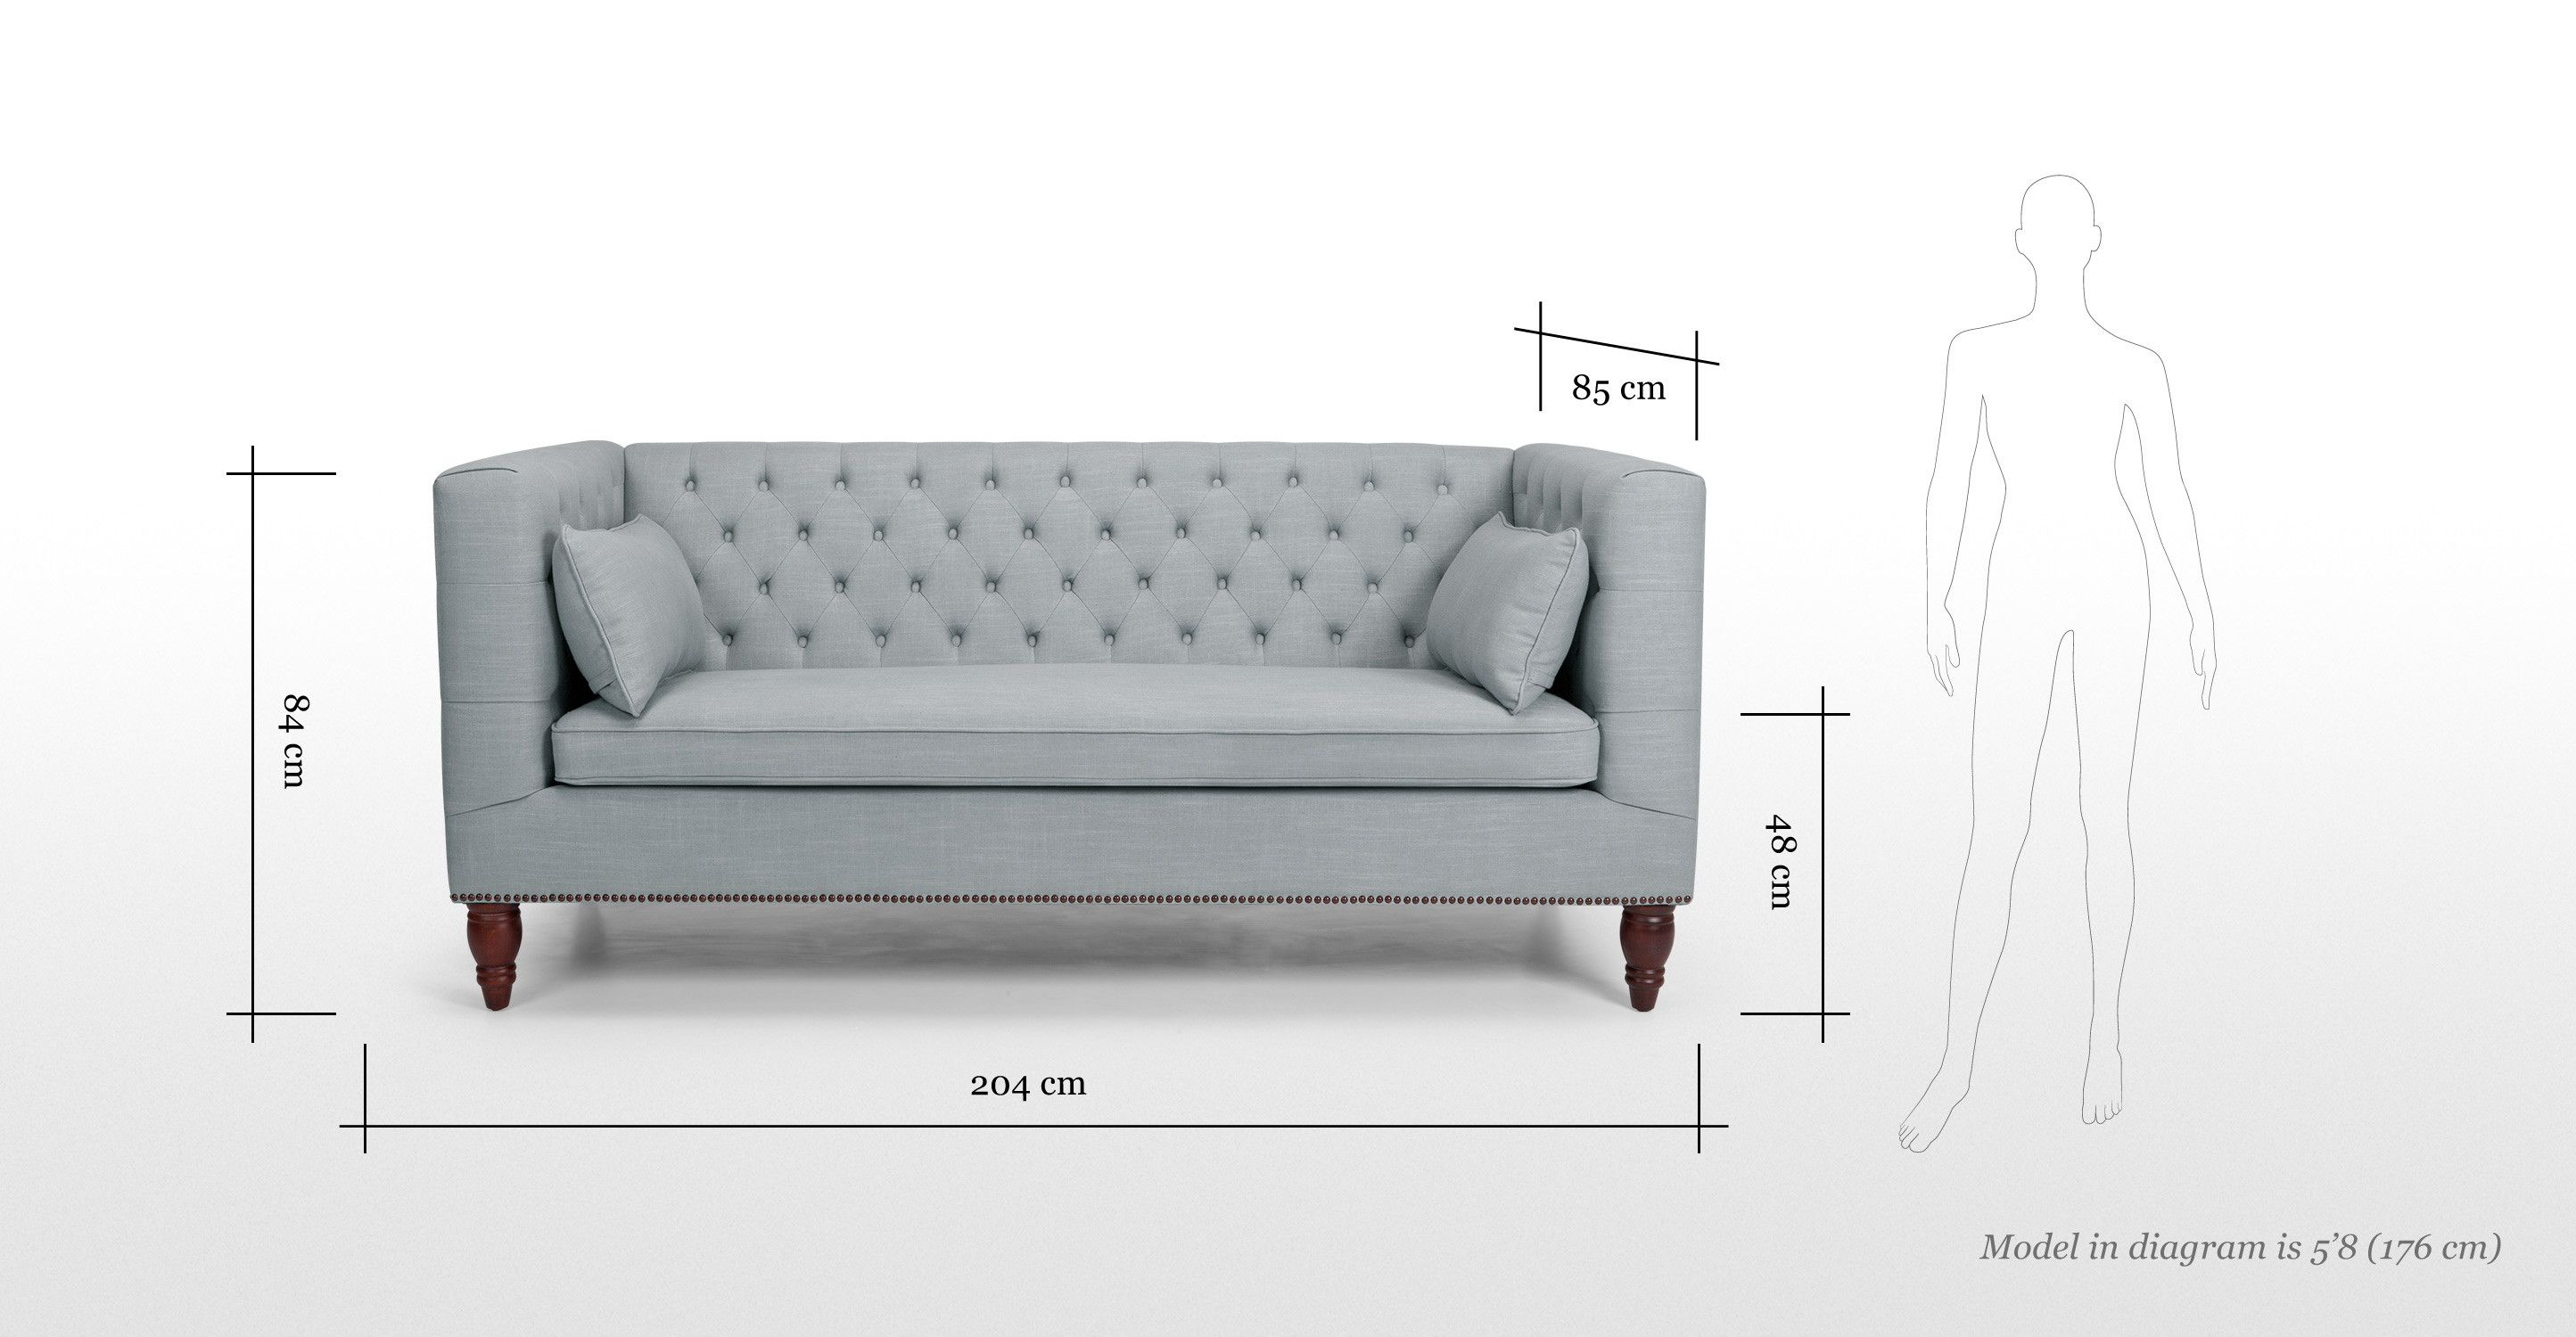 3 Sofa Best 25 43 3 Seater Sofa Ideas On Pinterest Sofa French